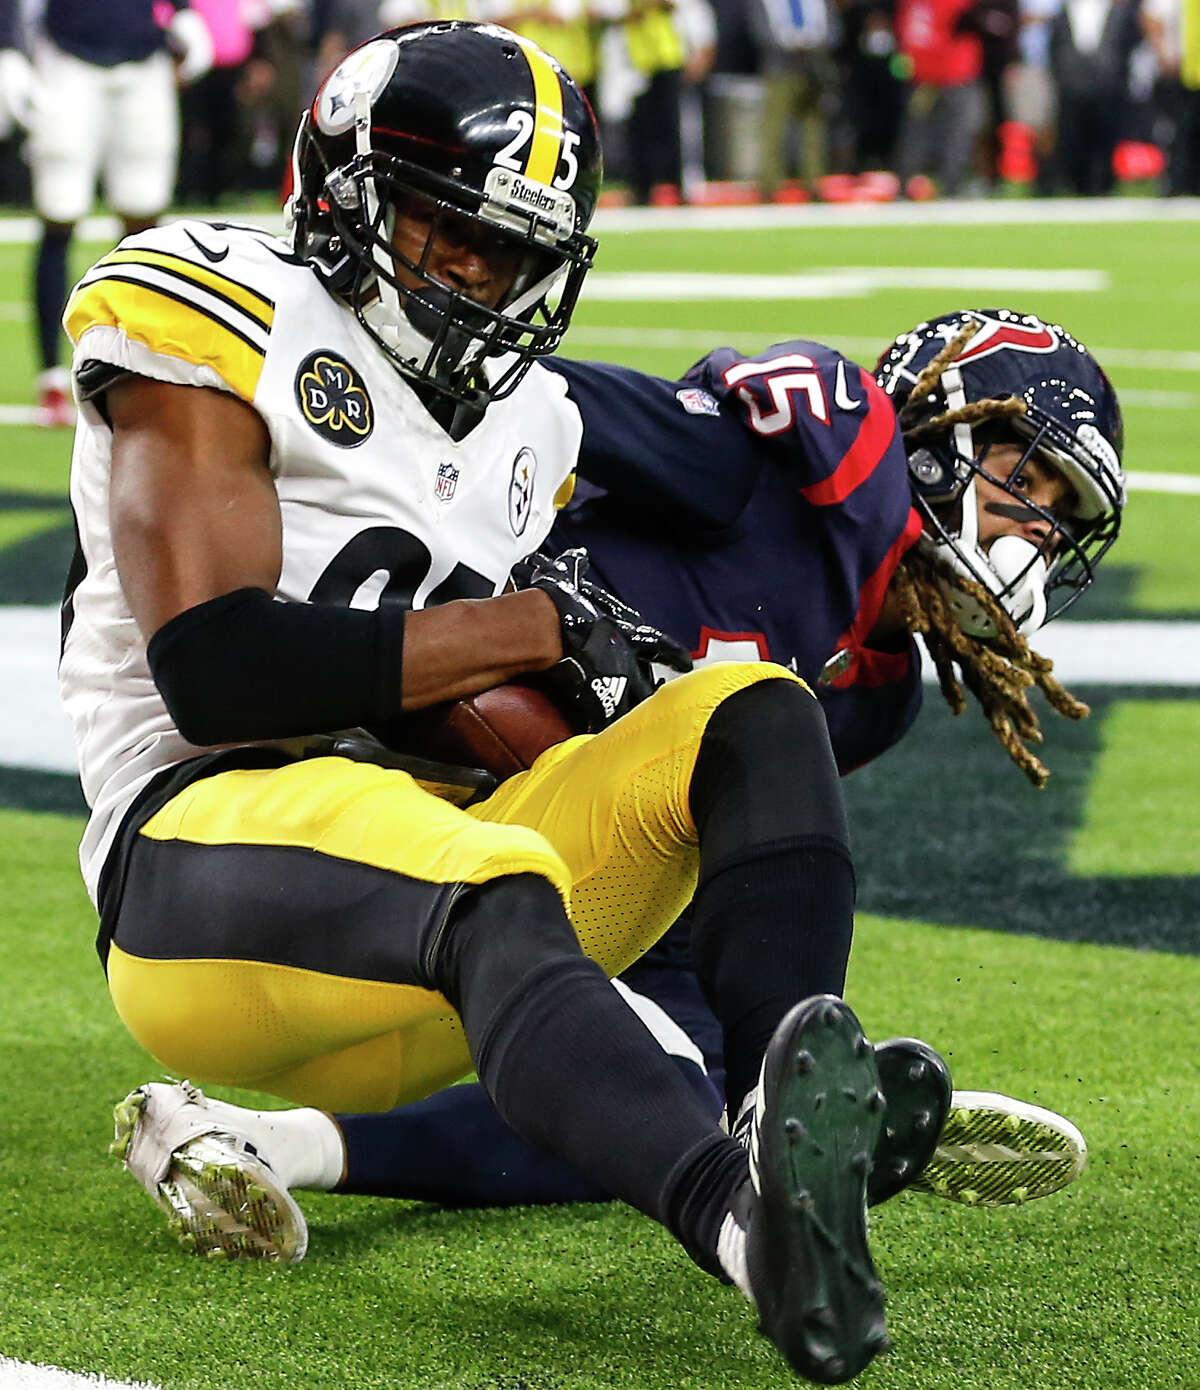 Pittsburgh Steelers cornerback Artie Burns (25) intercepts a pass intended for Houston Texans wide receiver Will Fuller (15) in the end zone during the second quarter of an NFL football game at NRG Stadium on Monday, Dec. 25, 2017, in Houston. ( Brett Coomer / Houston Chronicle )